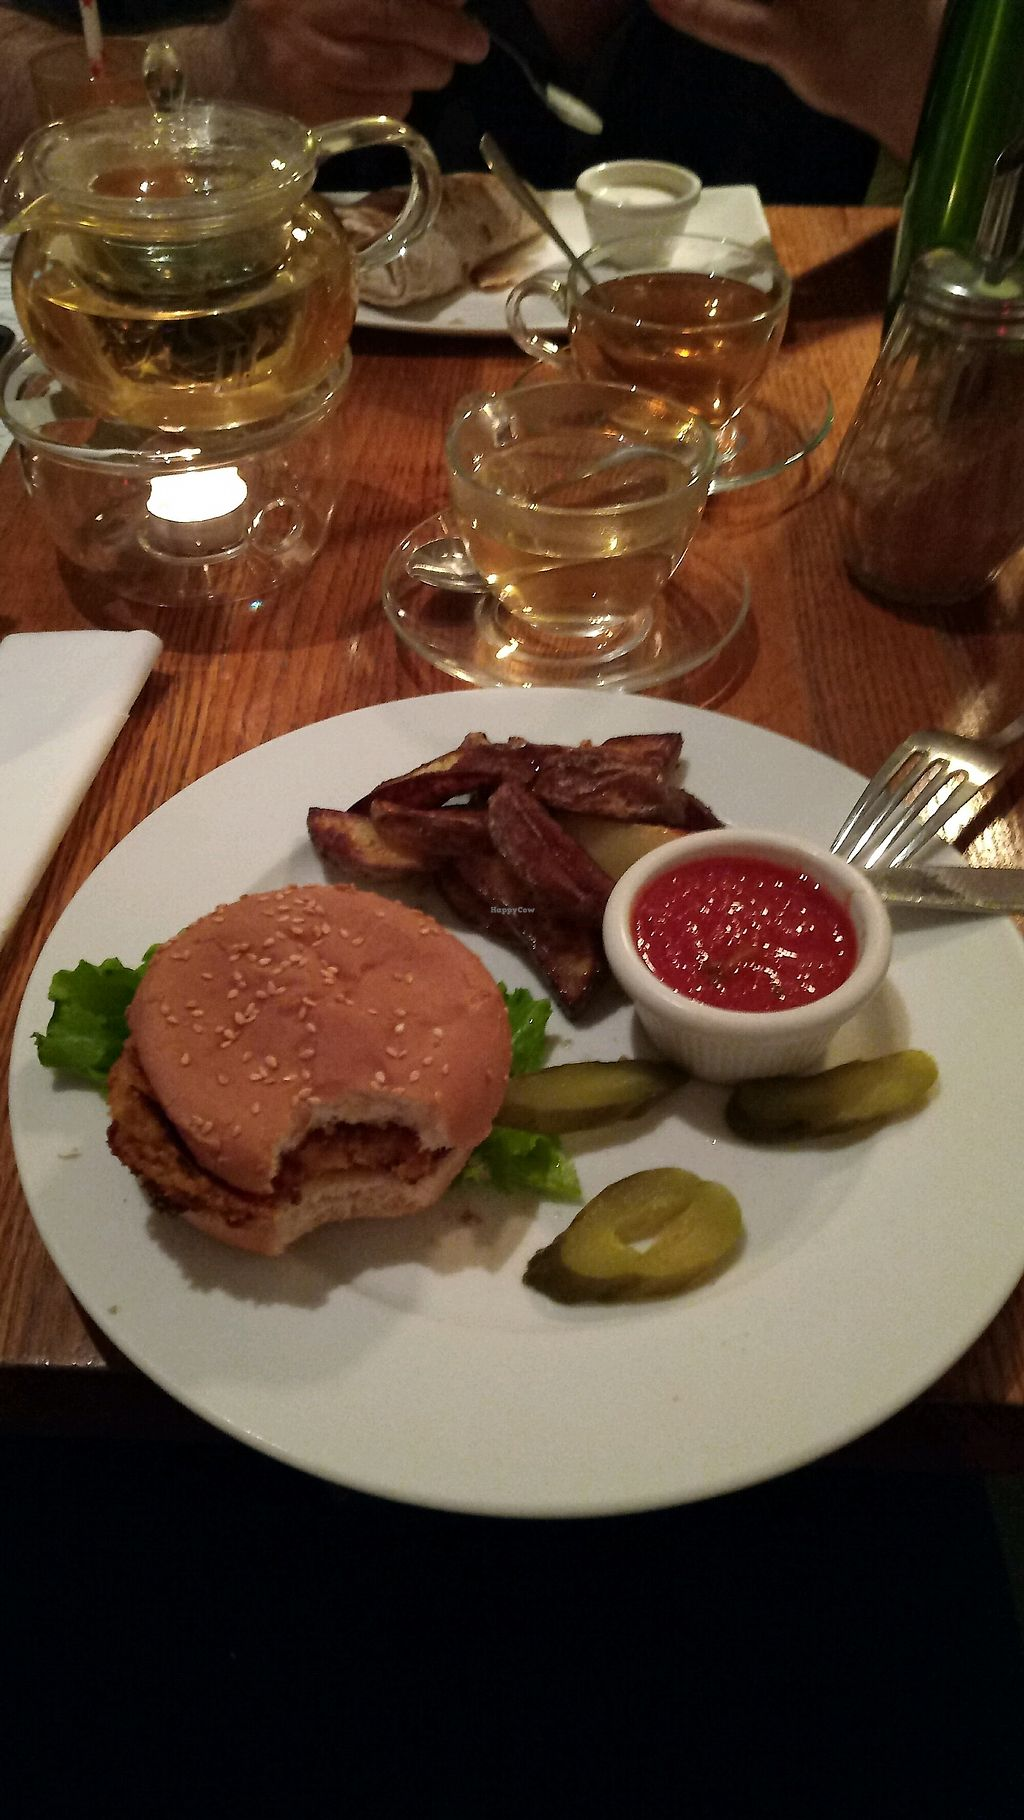 """Photo of Cafe Botanika  by <a href=""""/members/profile/AlicePechov%C3%A1"""">AlicePechová</a> <br/>happy cow burger <br/> February 19, 2018  - <a href='/contact/abuse/image/12603/361258'>Report</a>"""